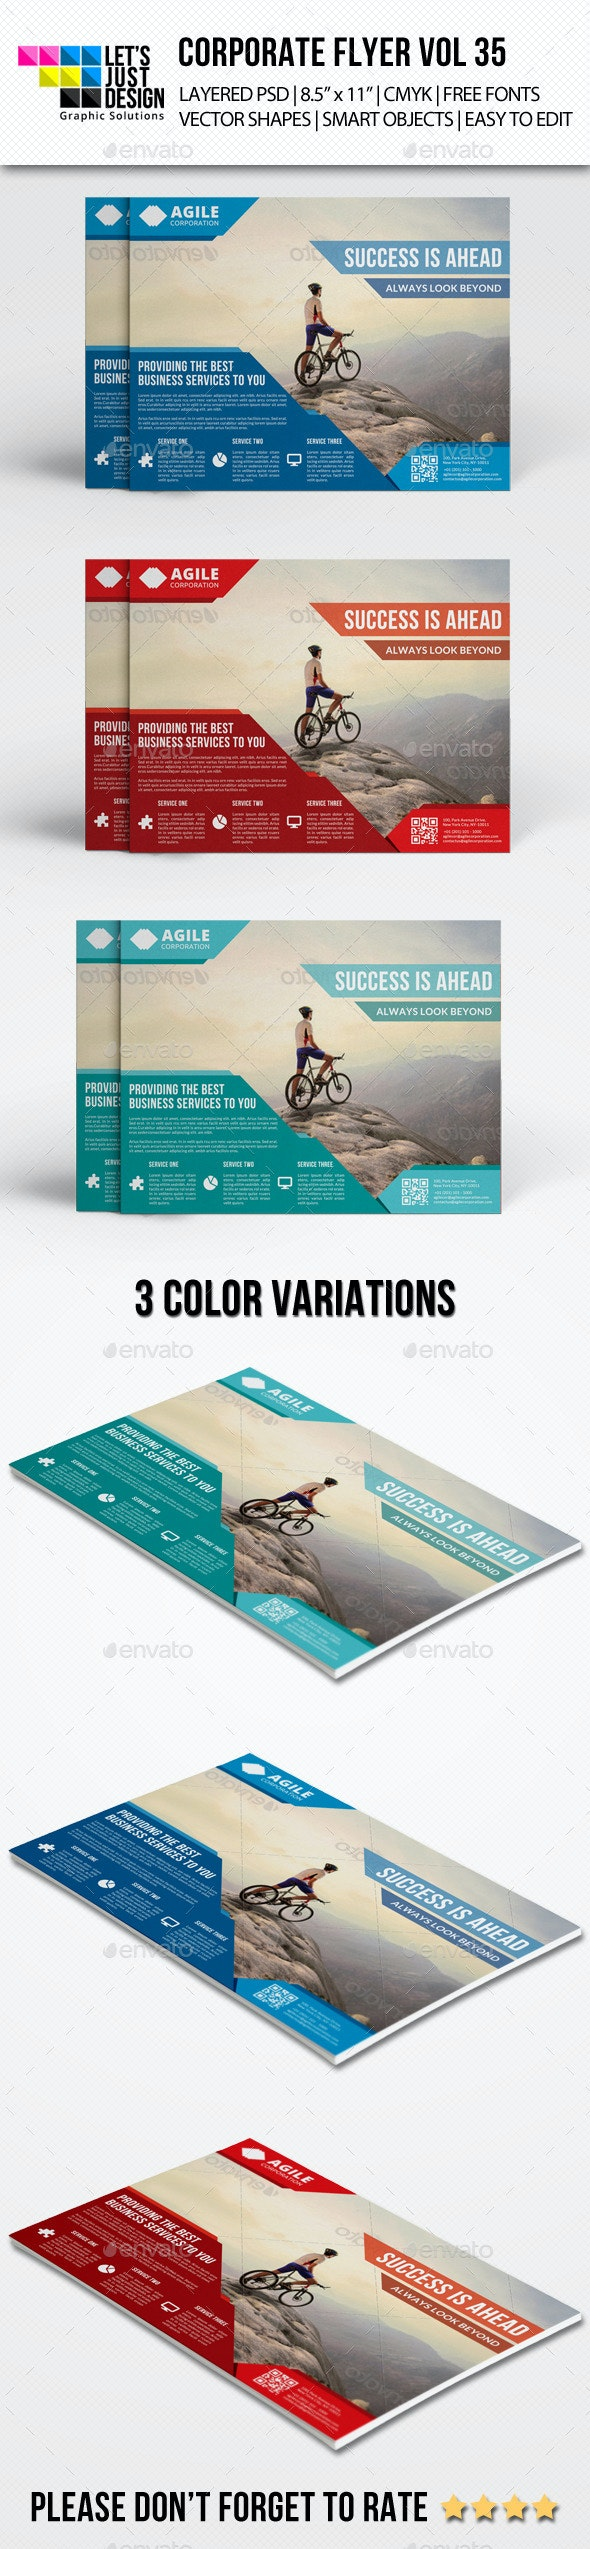 Corporate Flyer Template Vol 35 - Corporate Flyers